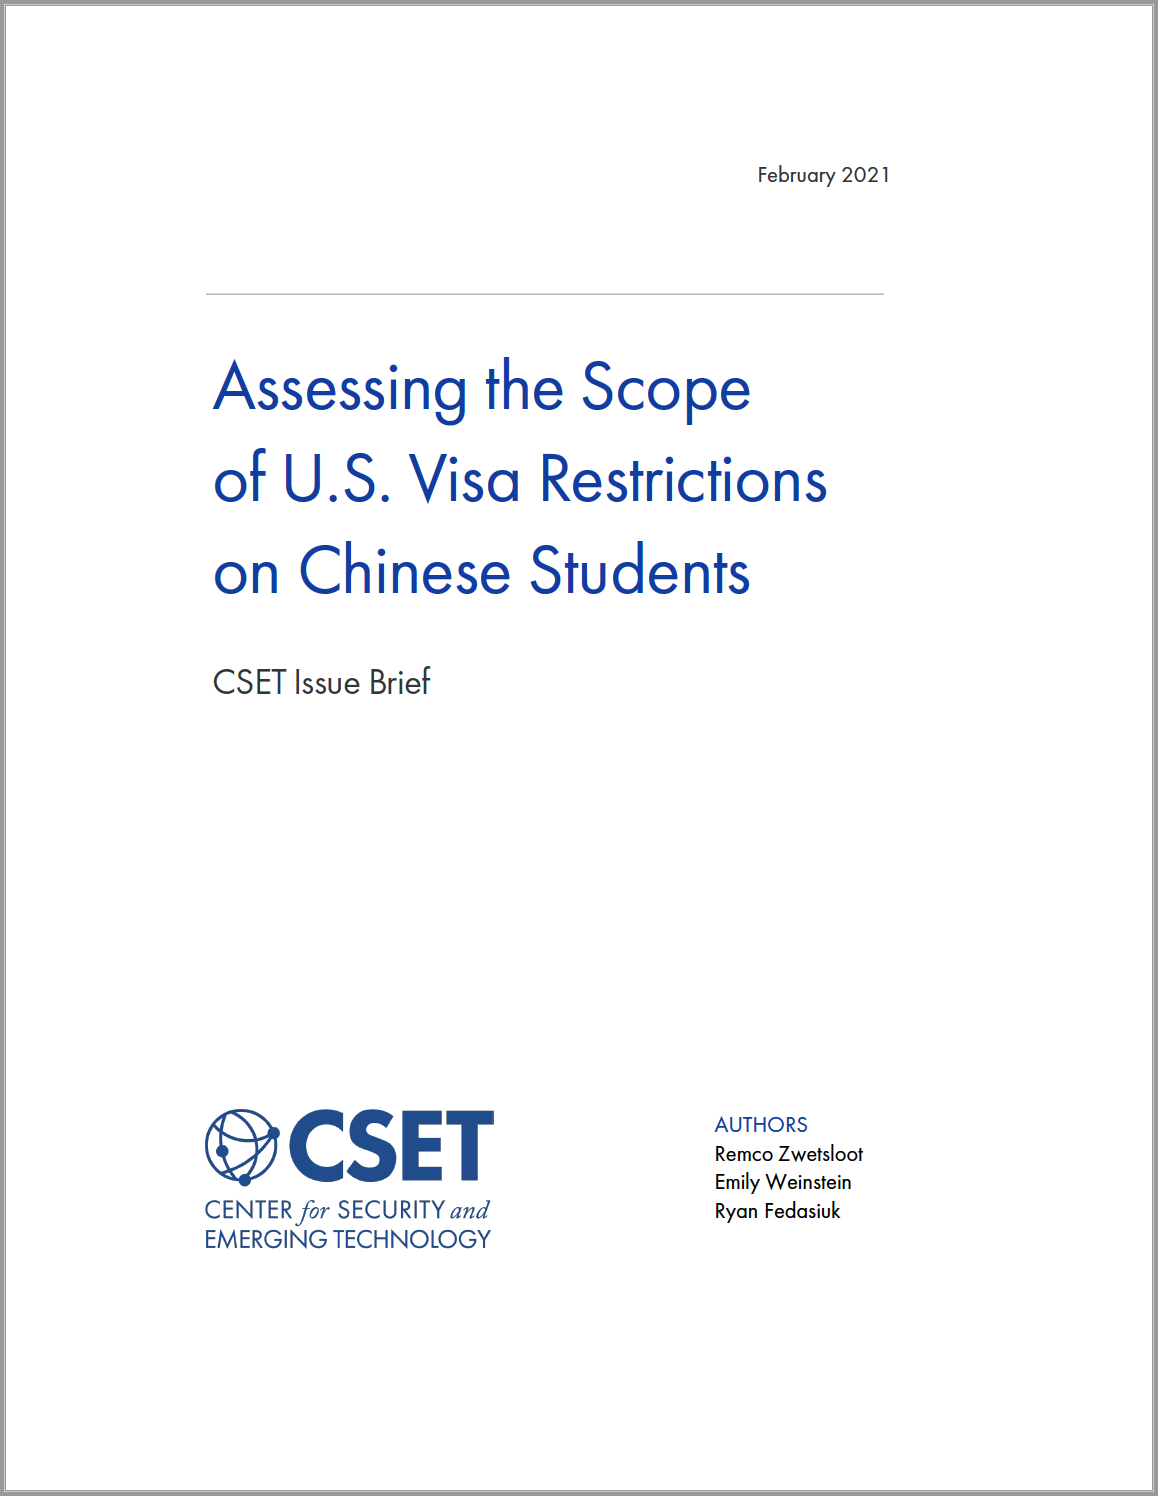 Assessing the Scope of U.S. Visa Restrictions on Chinese Students Image